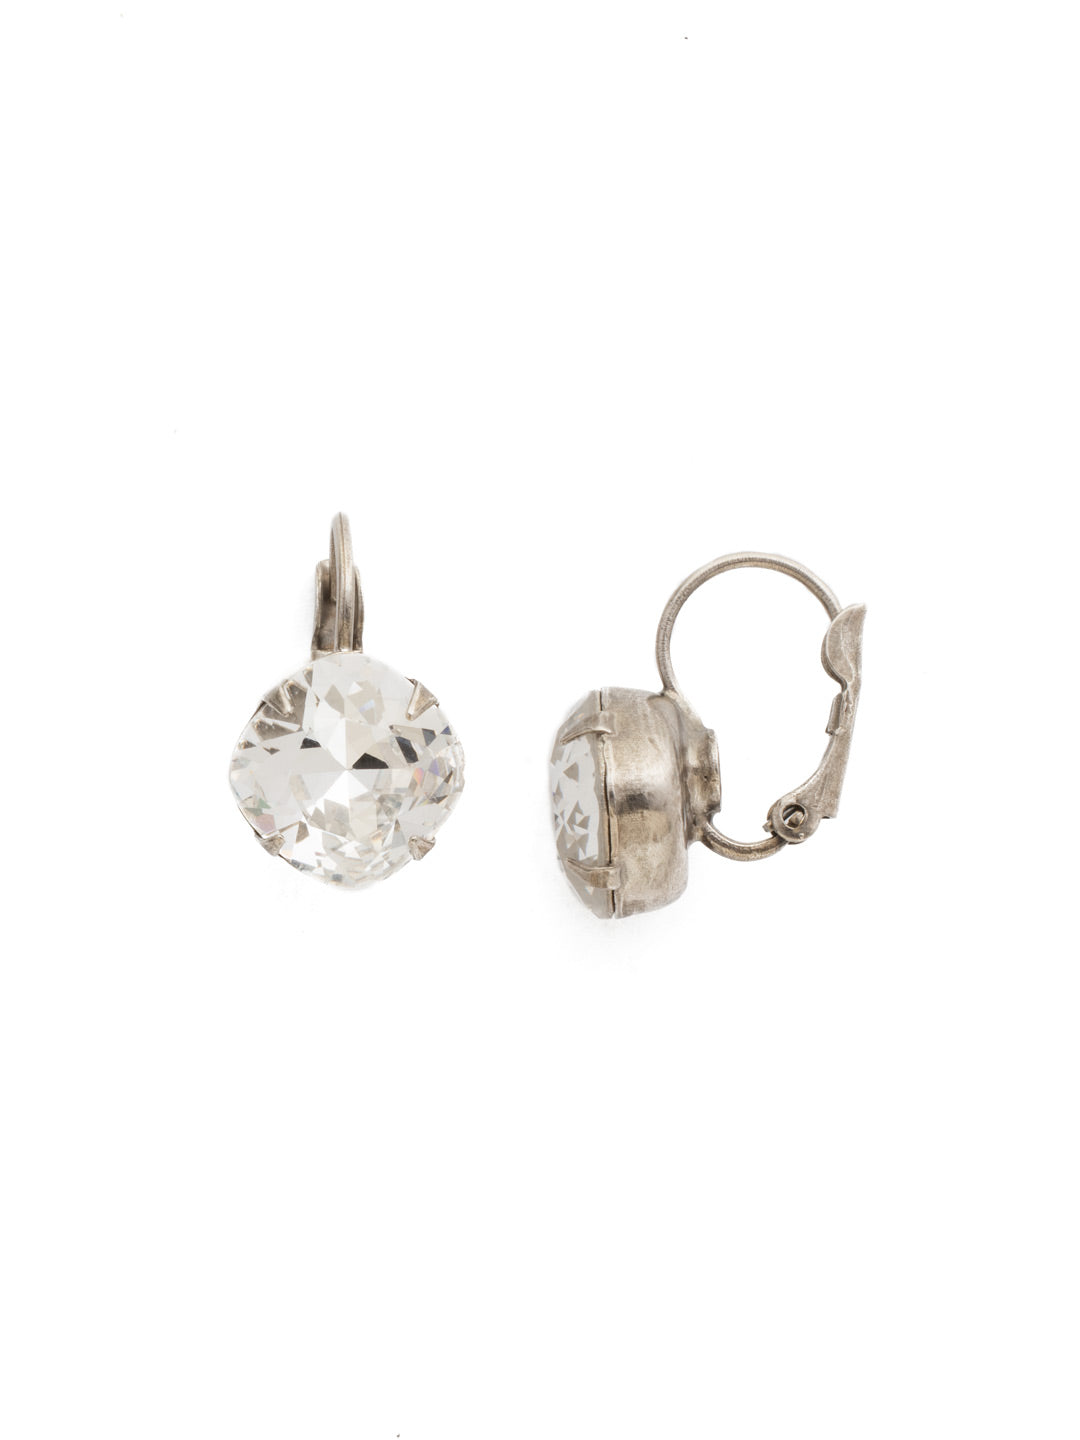 Cushion Cut French Wire Earrings - Sorrelli Essentials - EDL12ASCRY